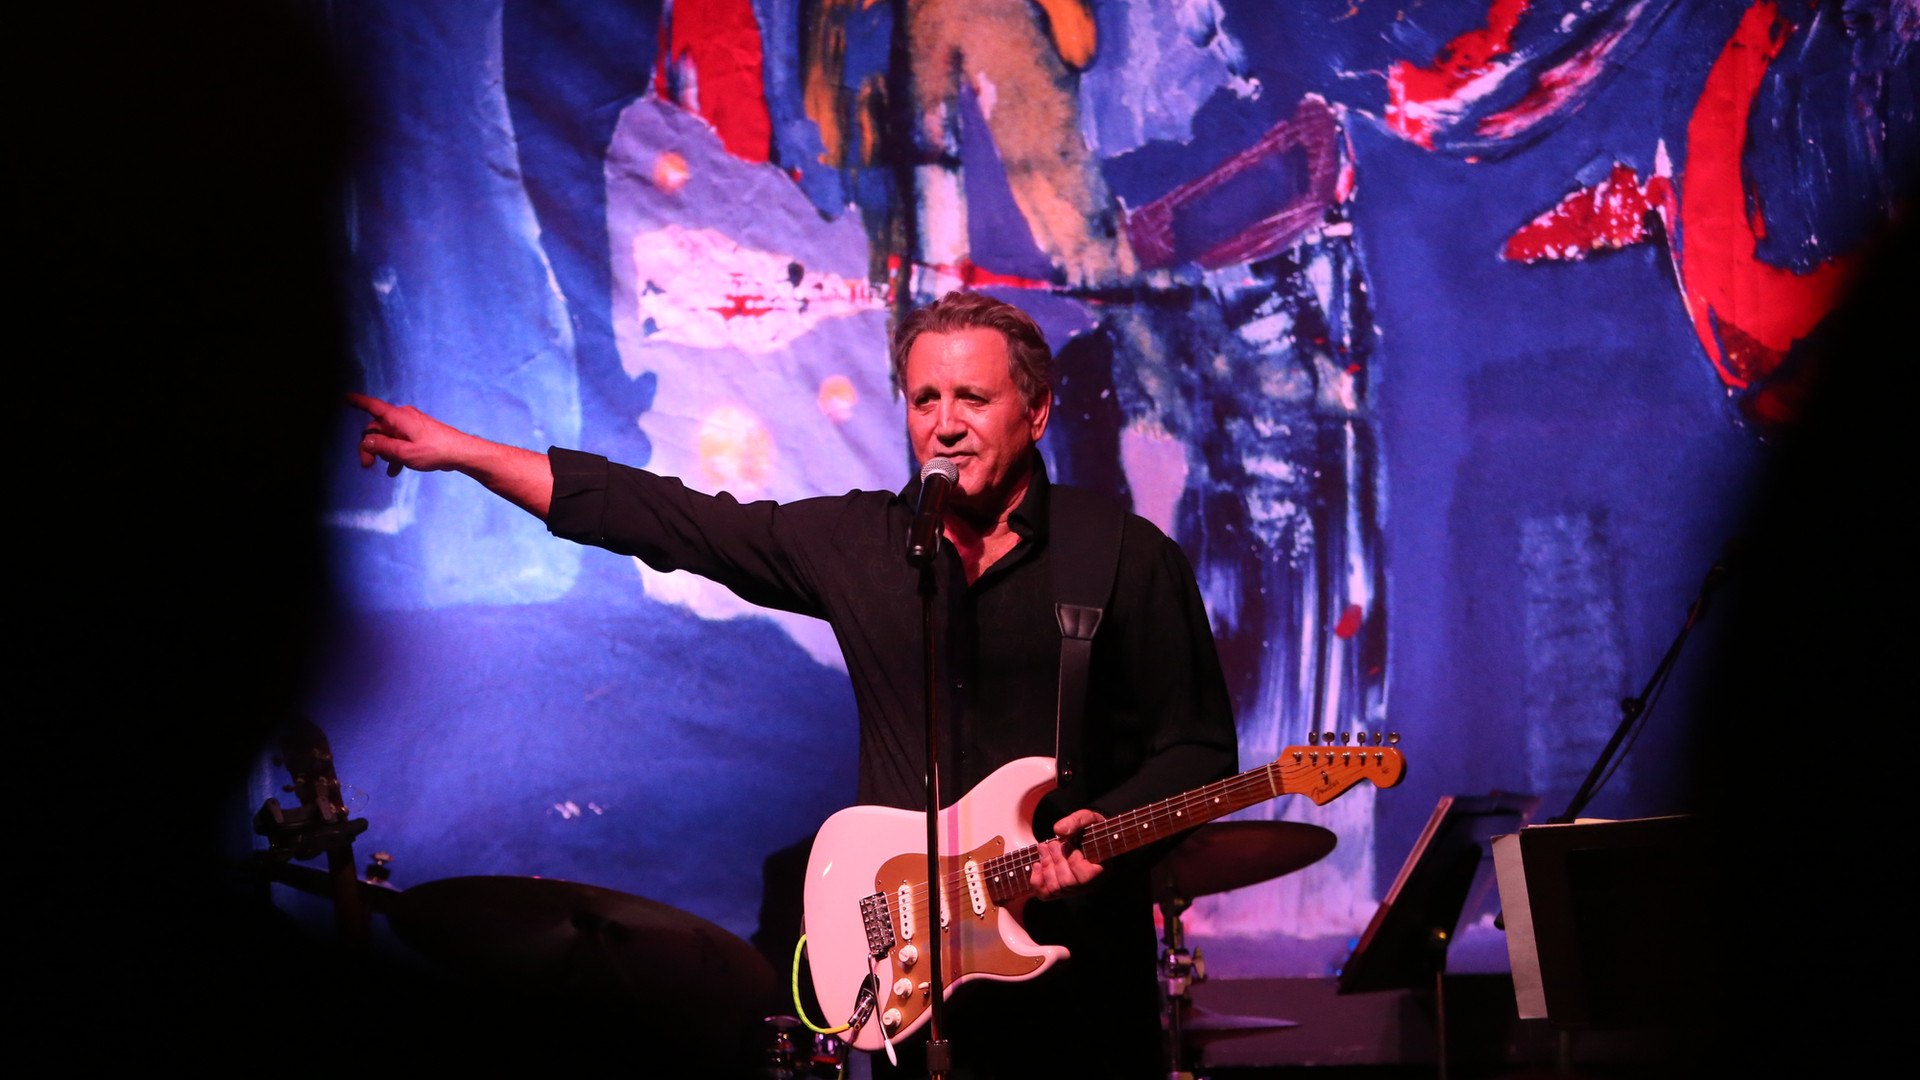 Frank Stallone Live Music